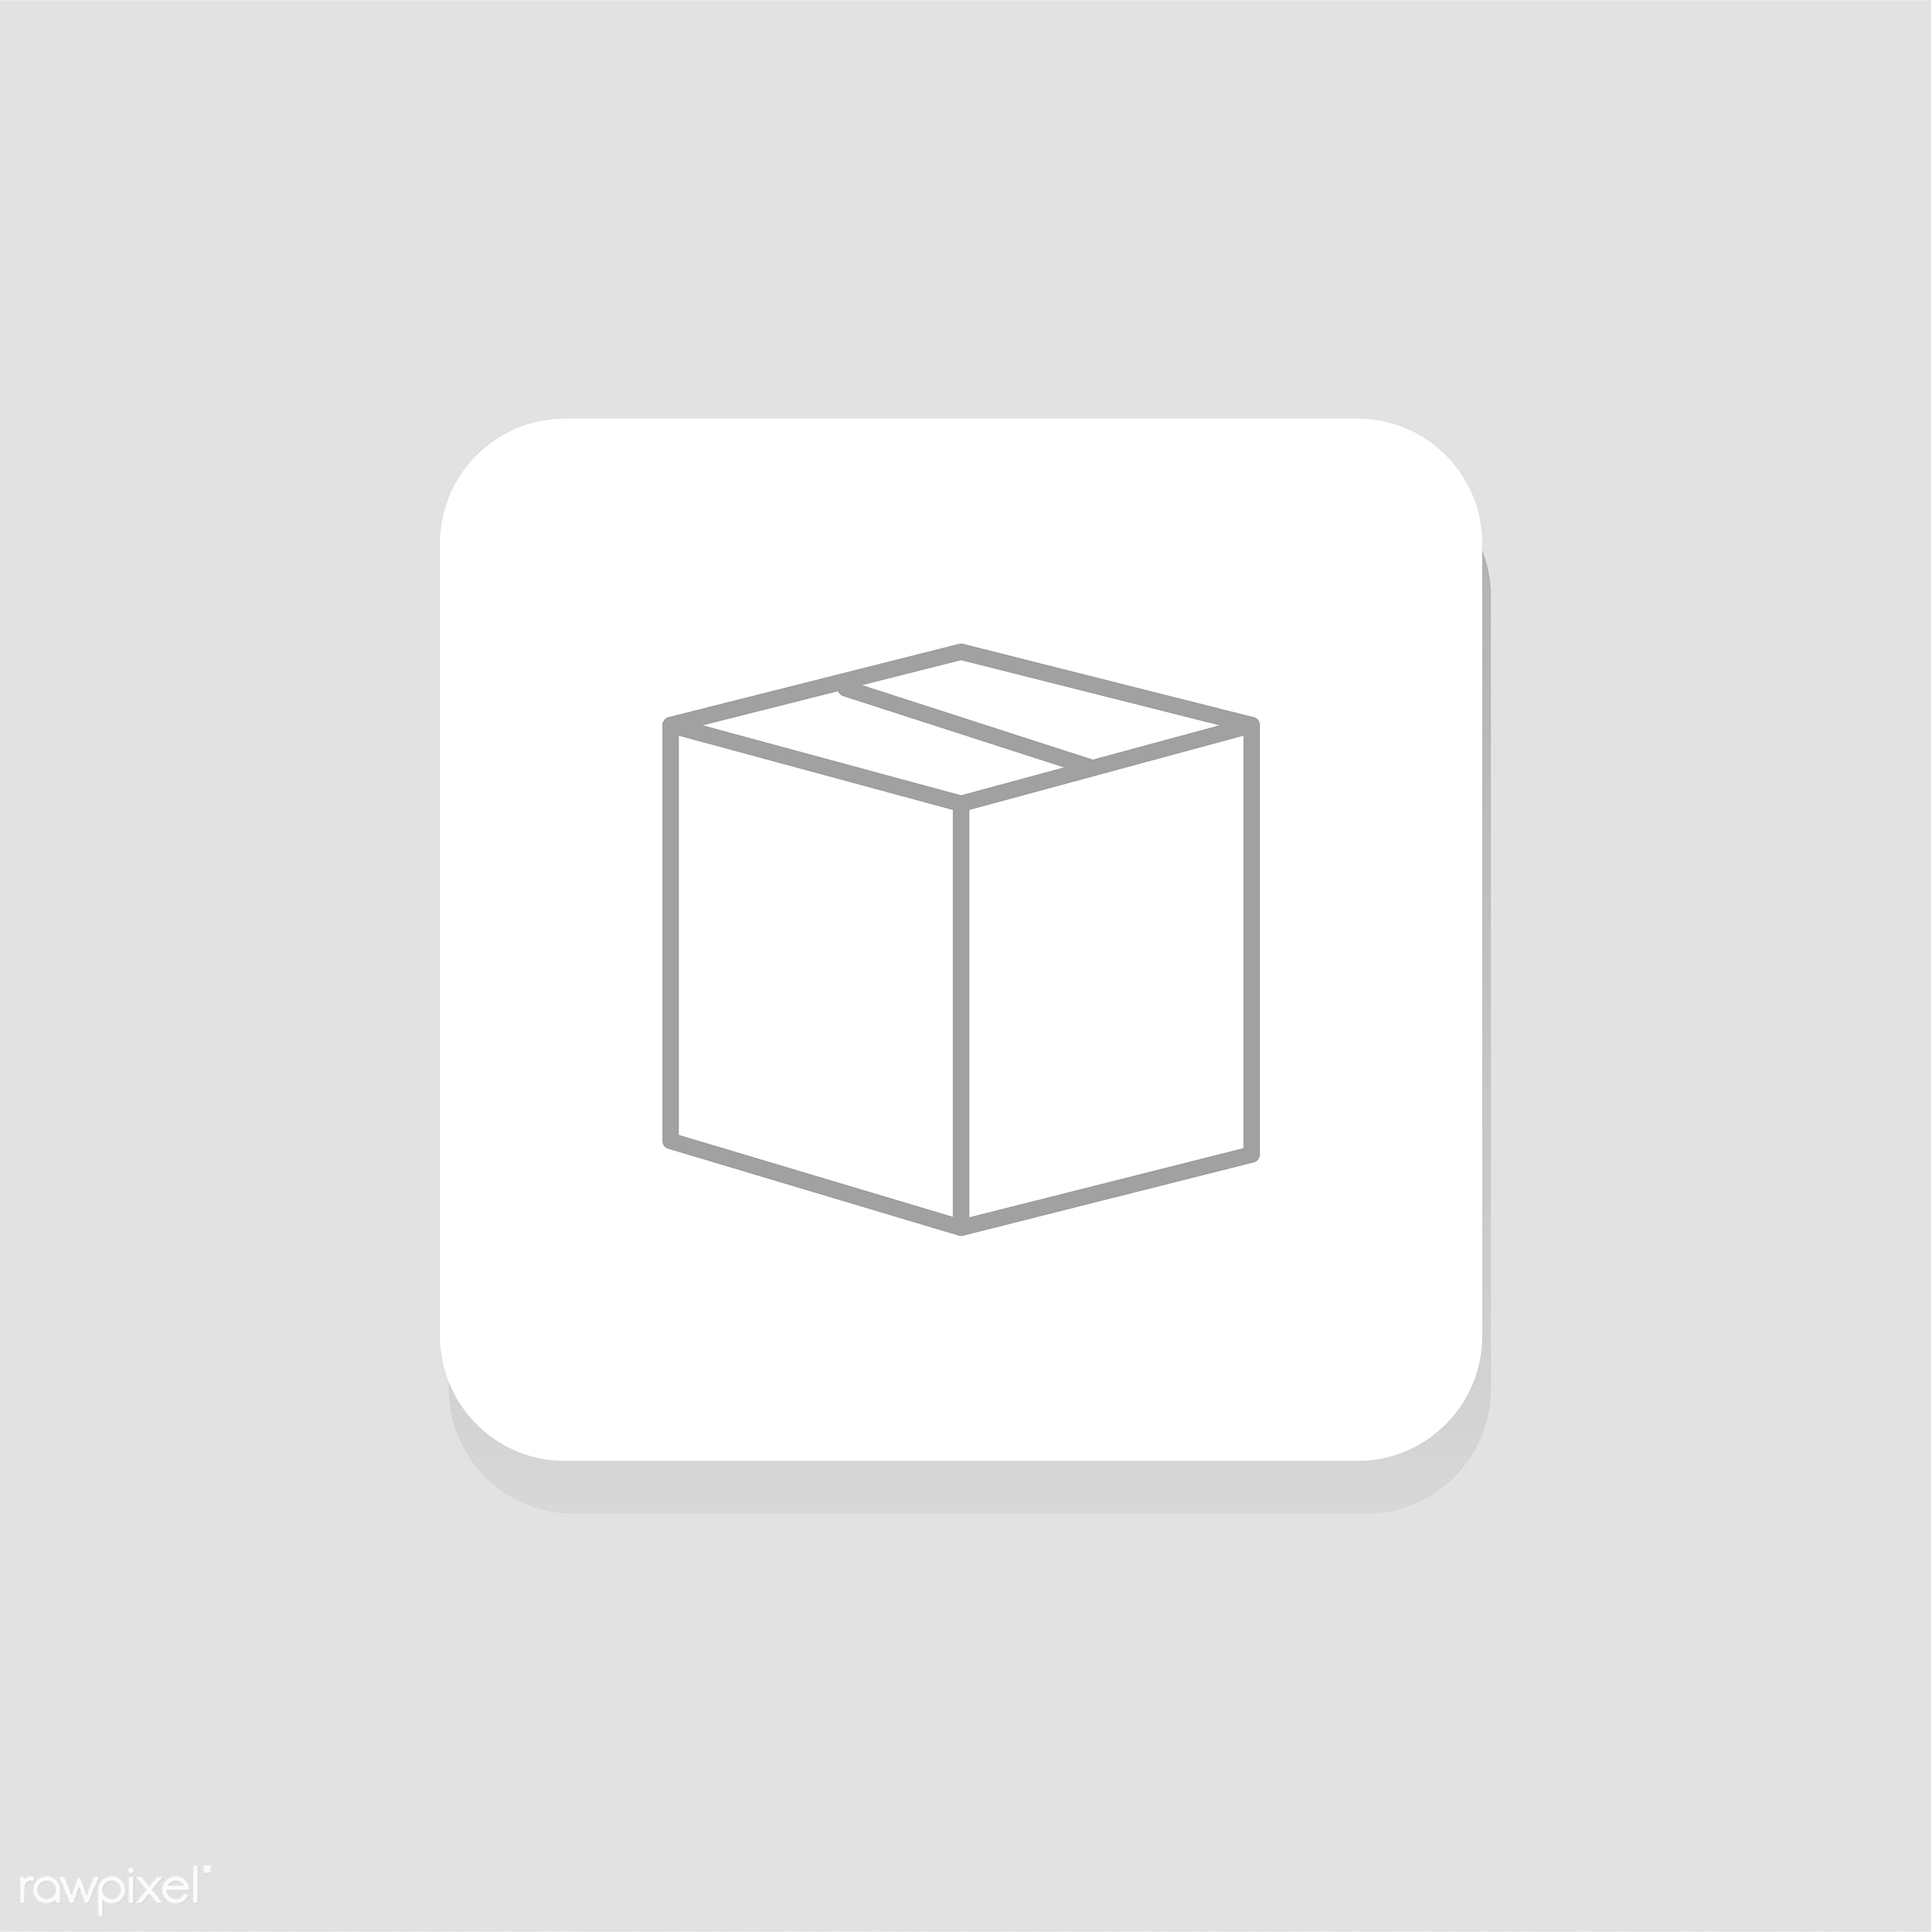 Vector of box icon - box, delivery, design, flat, freight, graphic, icon, illustration, isolated, layout, logistic, package...